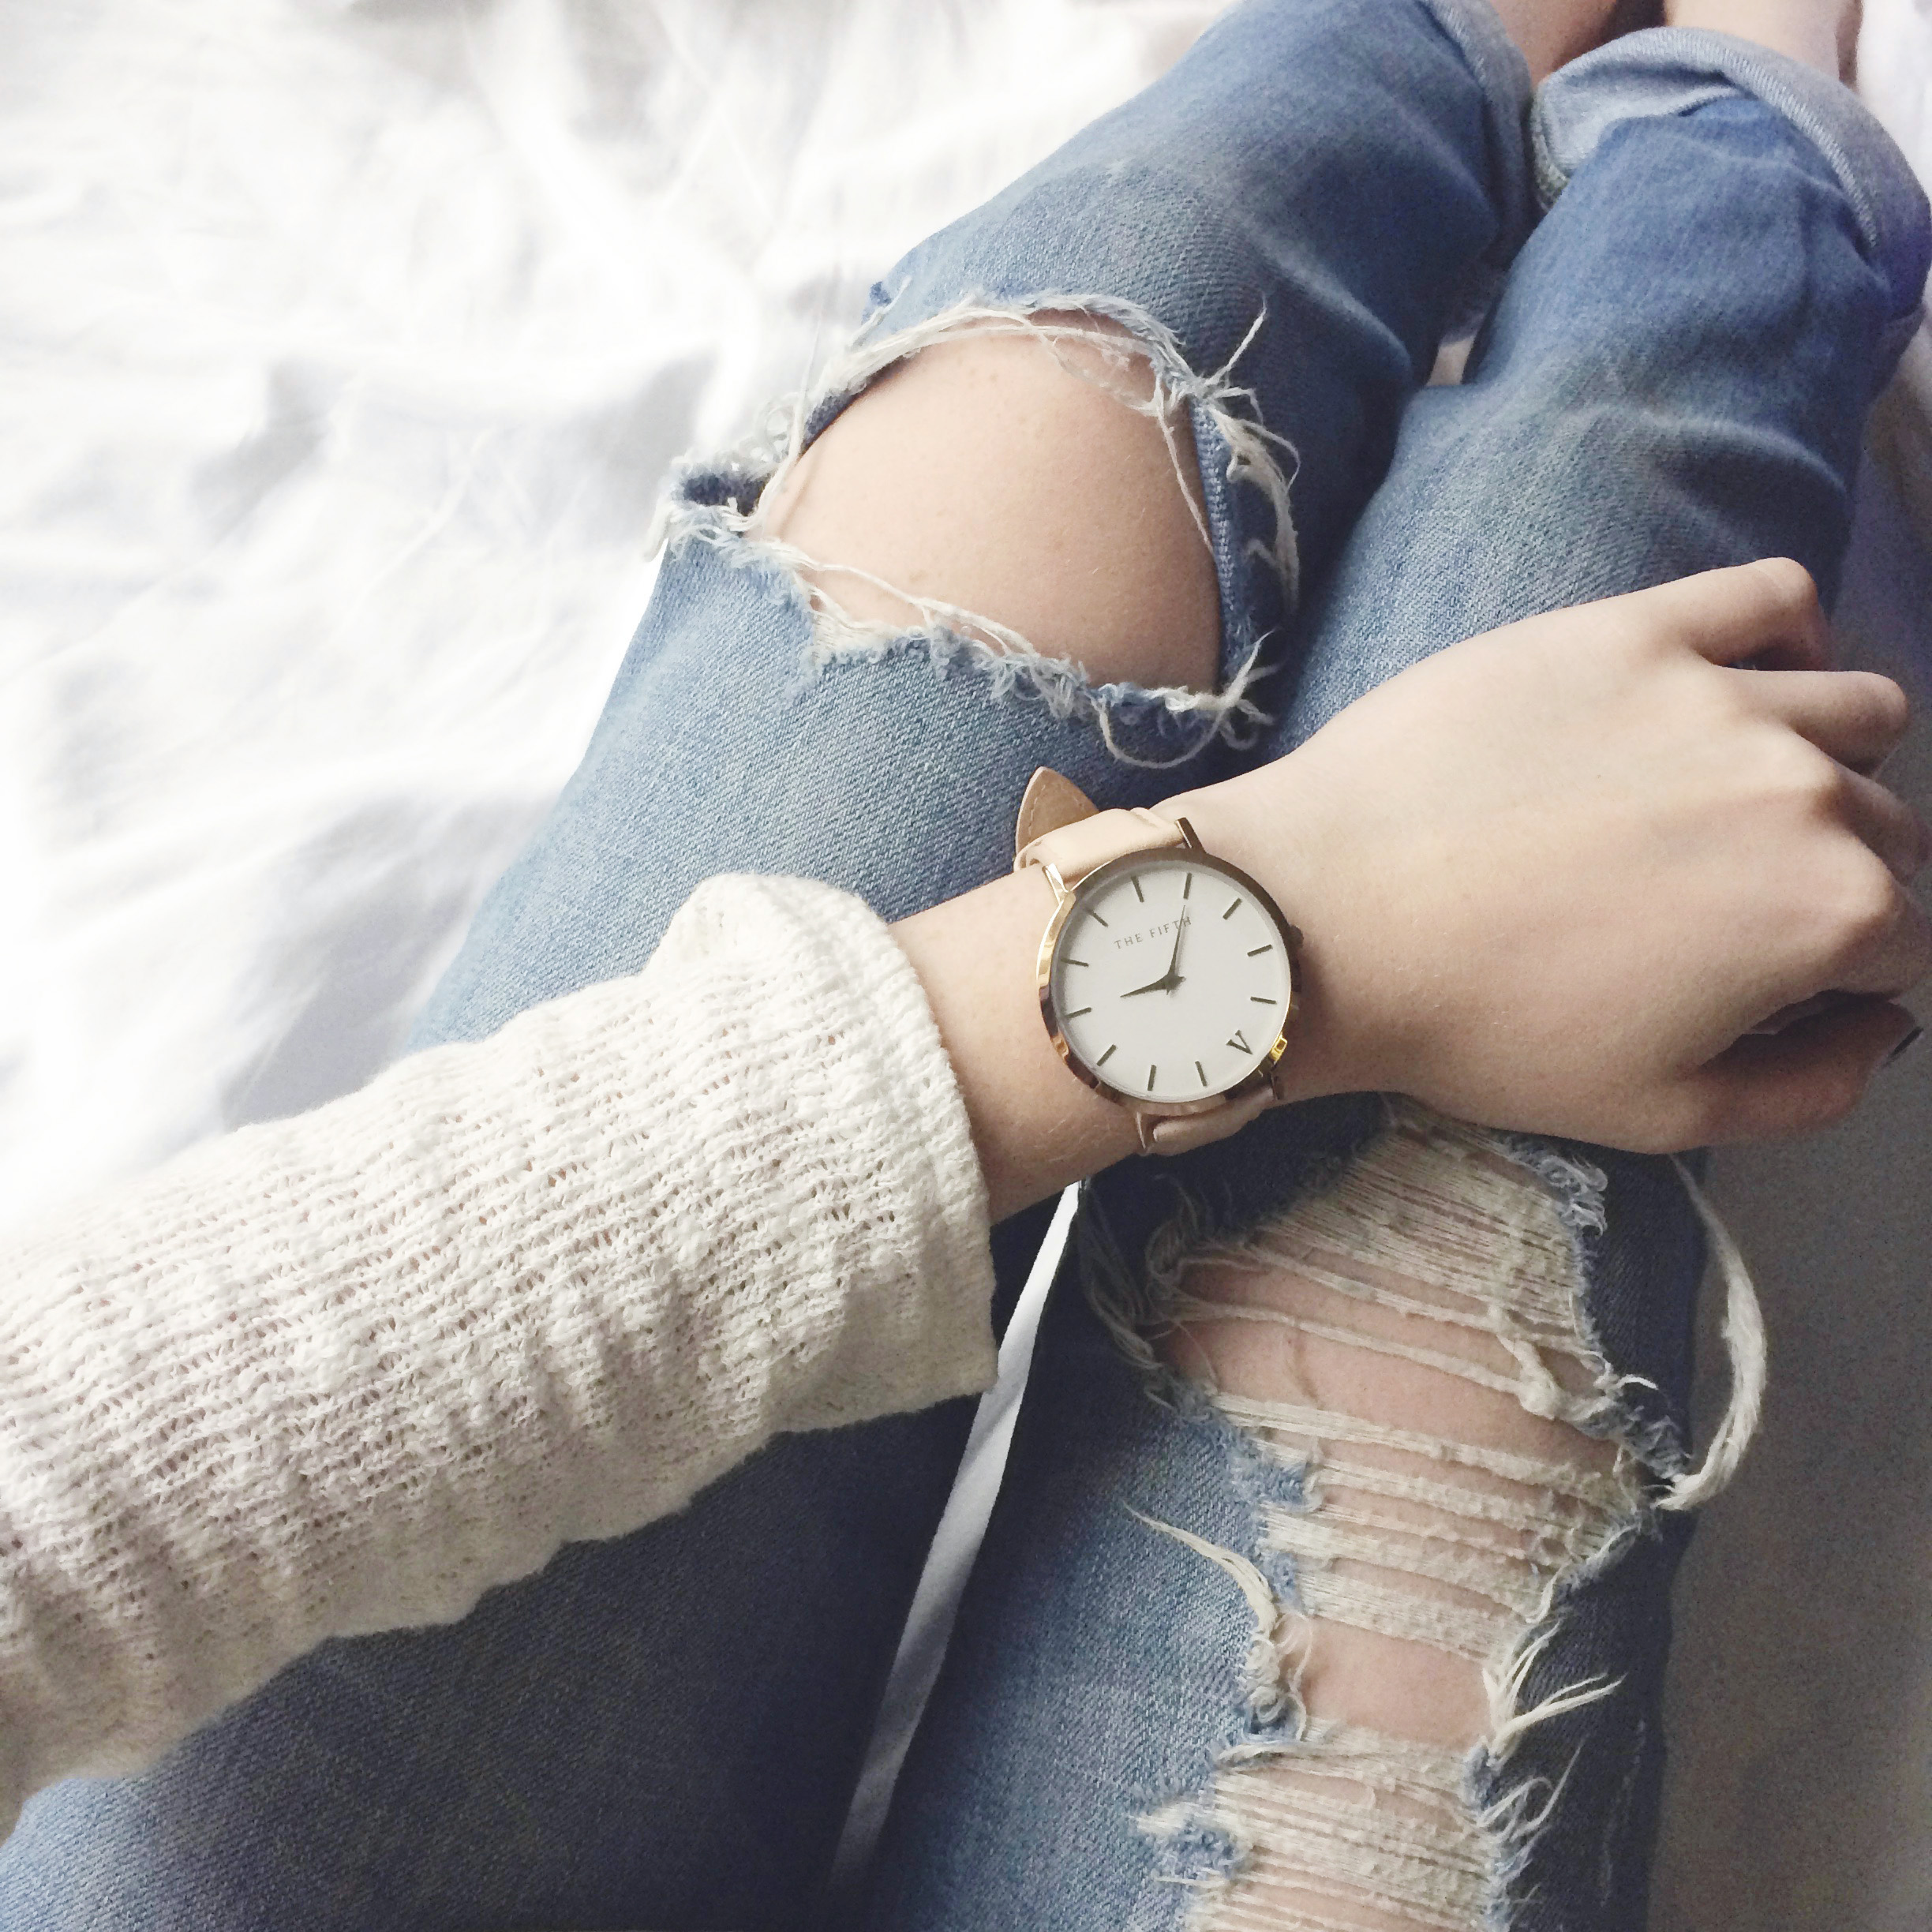 Rose Gold Soho Fifth Watch (via Girl x Garment)